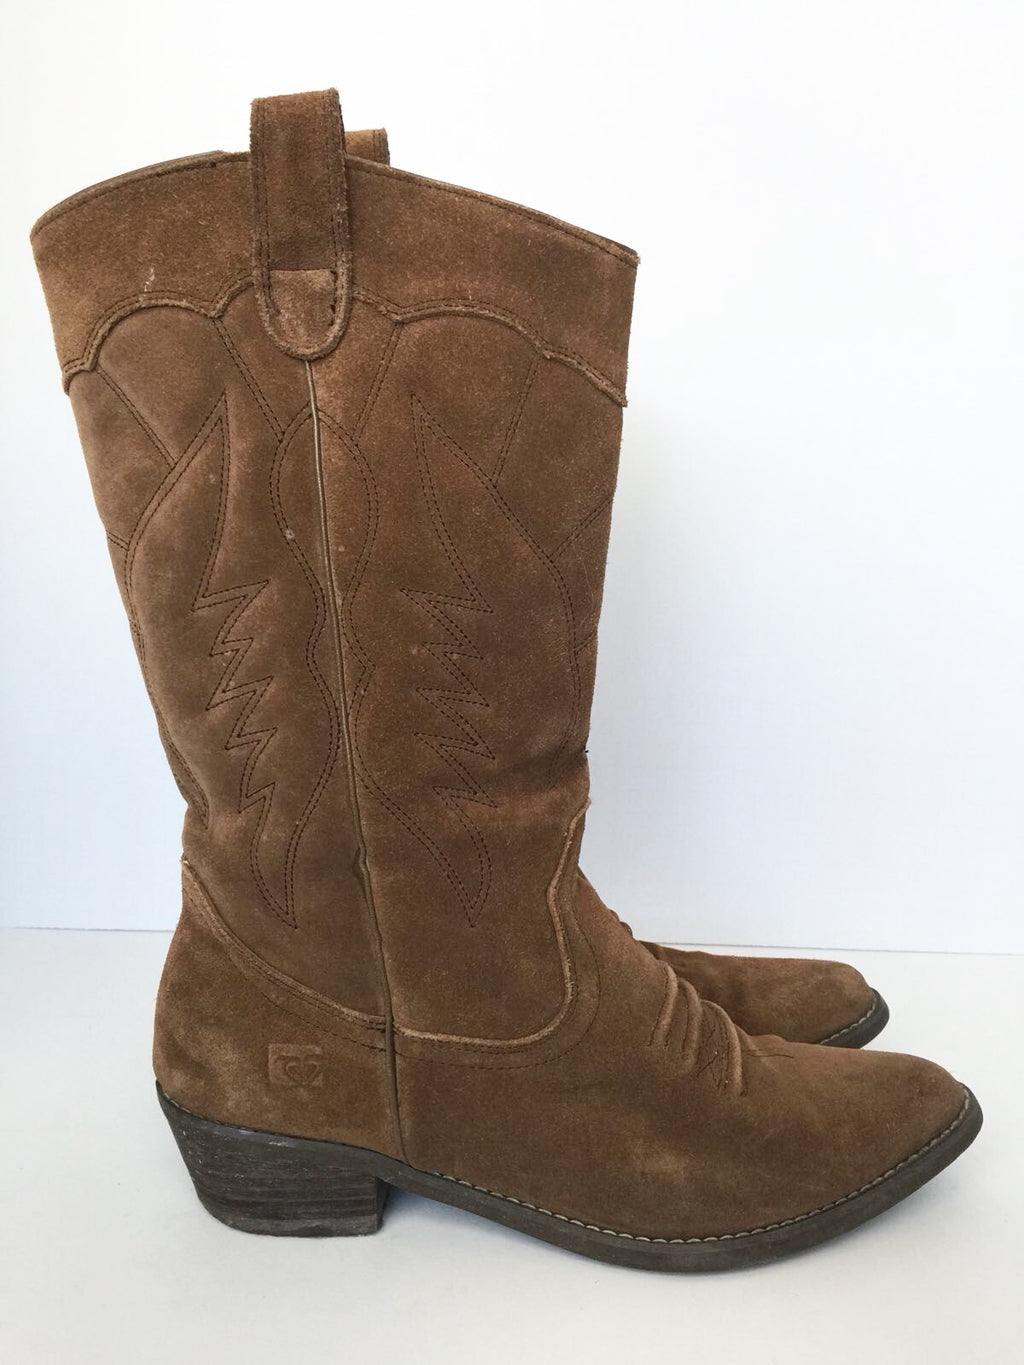 Roxy Brown Giddy-Up Cowboy Boots Size 9